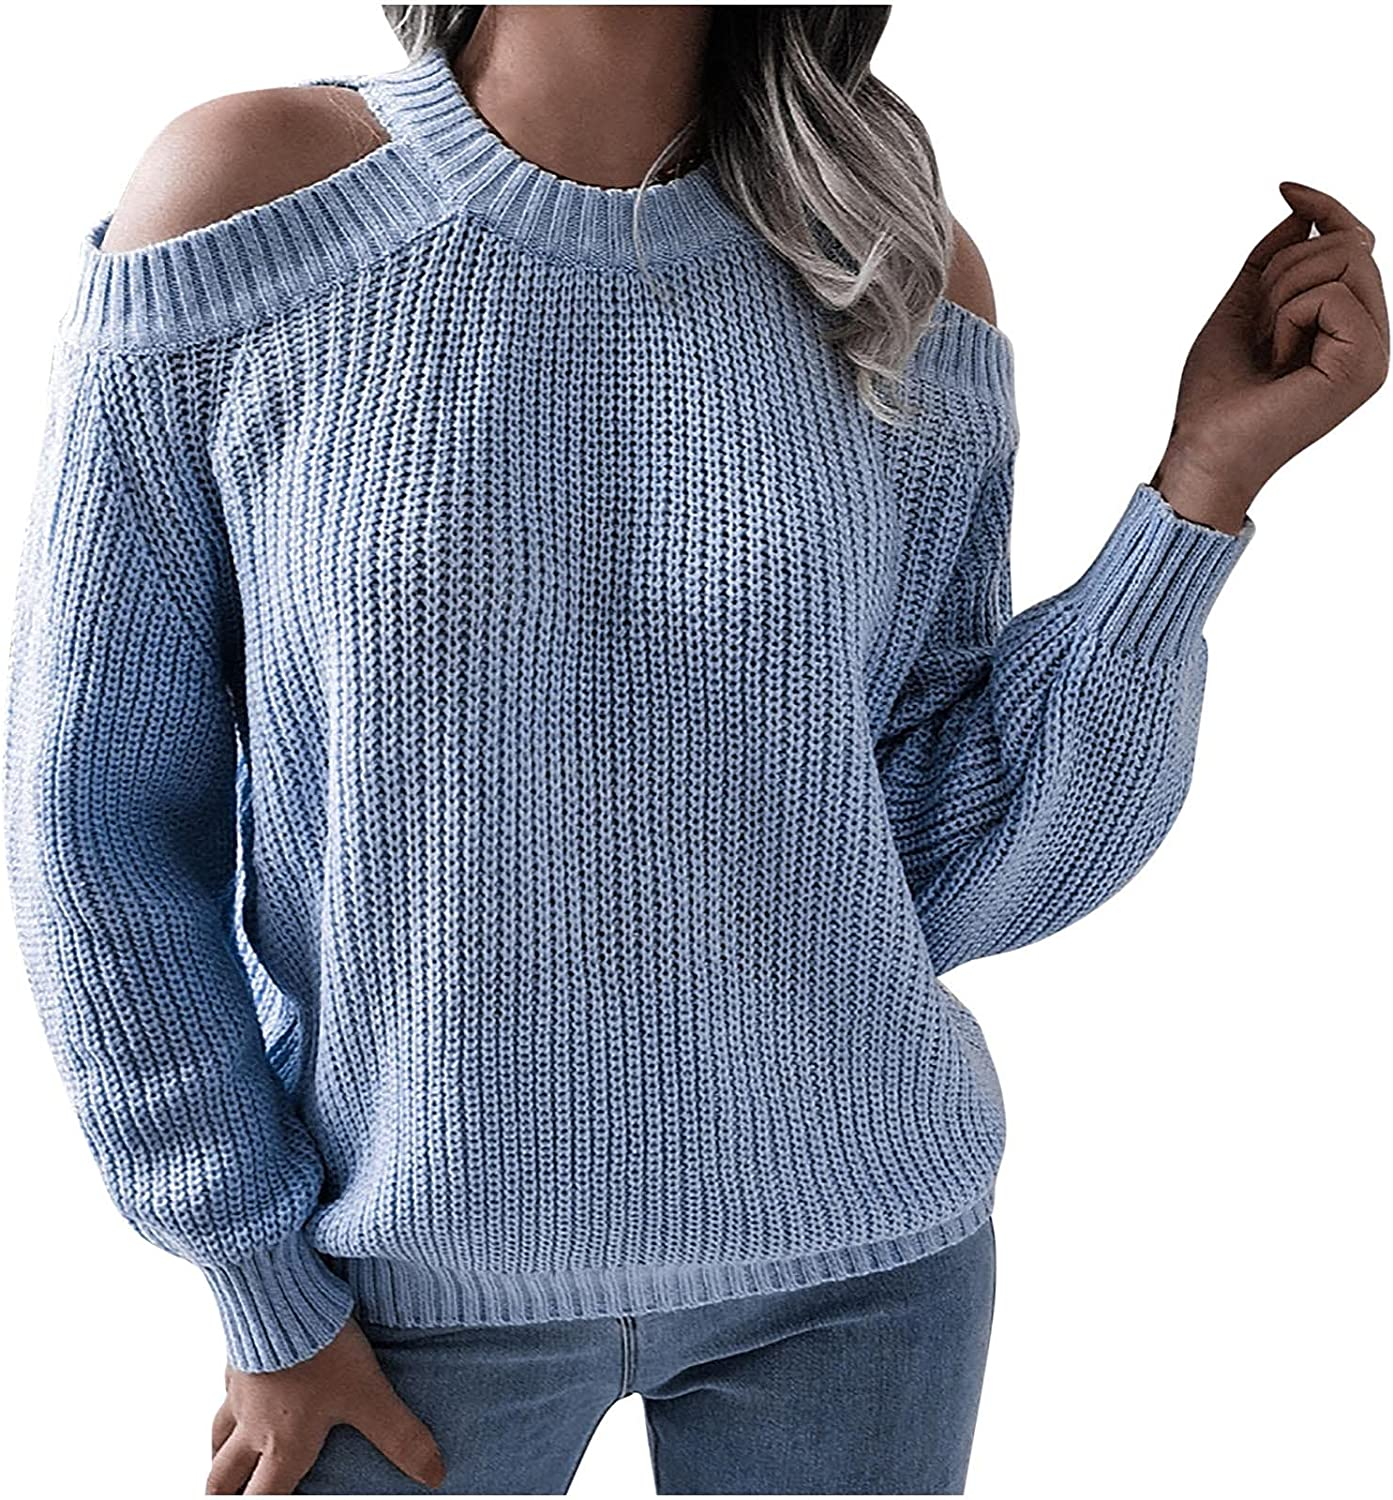 Sweaters for Women Sexy Halter Off-Shoulder Blouse Tops Long-Sleeved Loose T-Shirts Fashion Knit Sweater